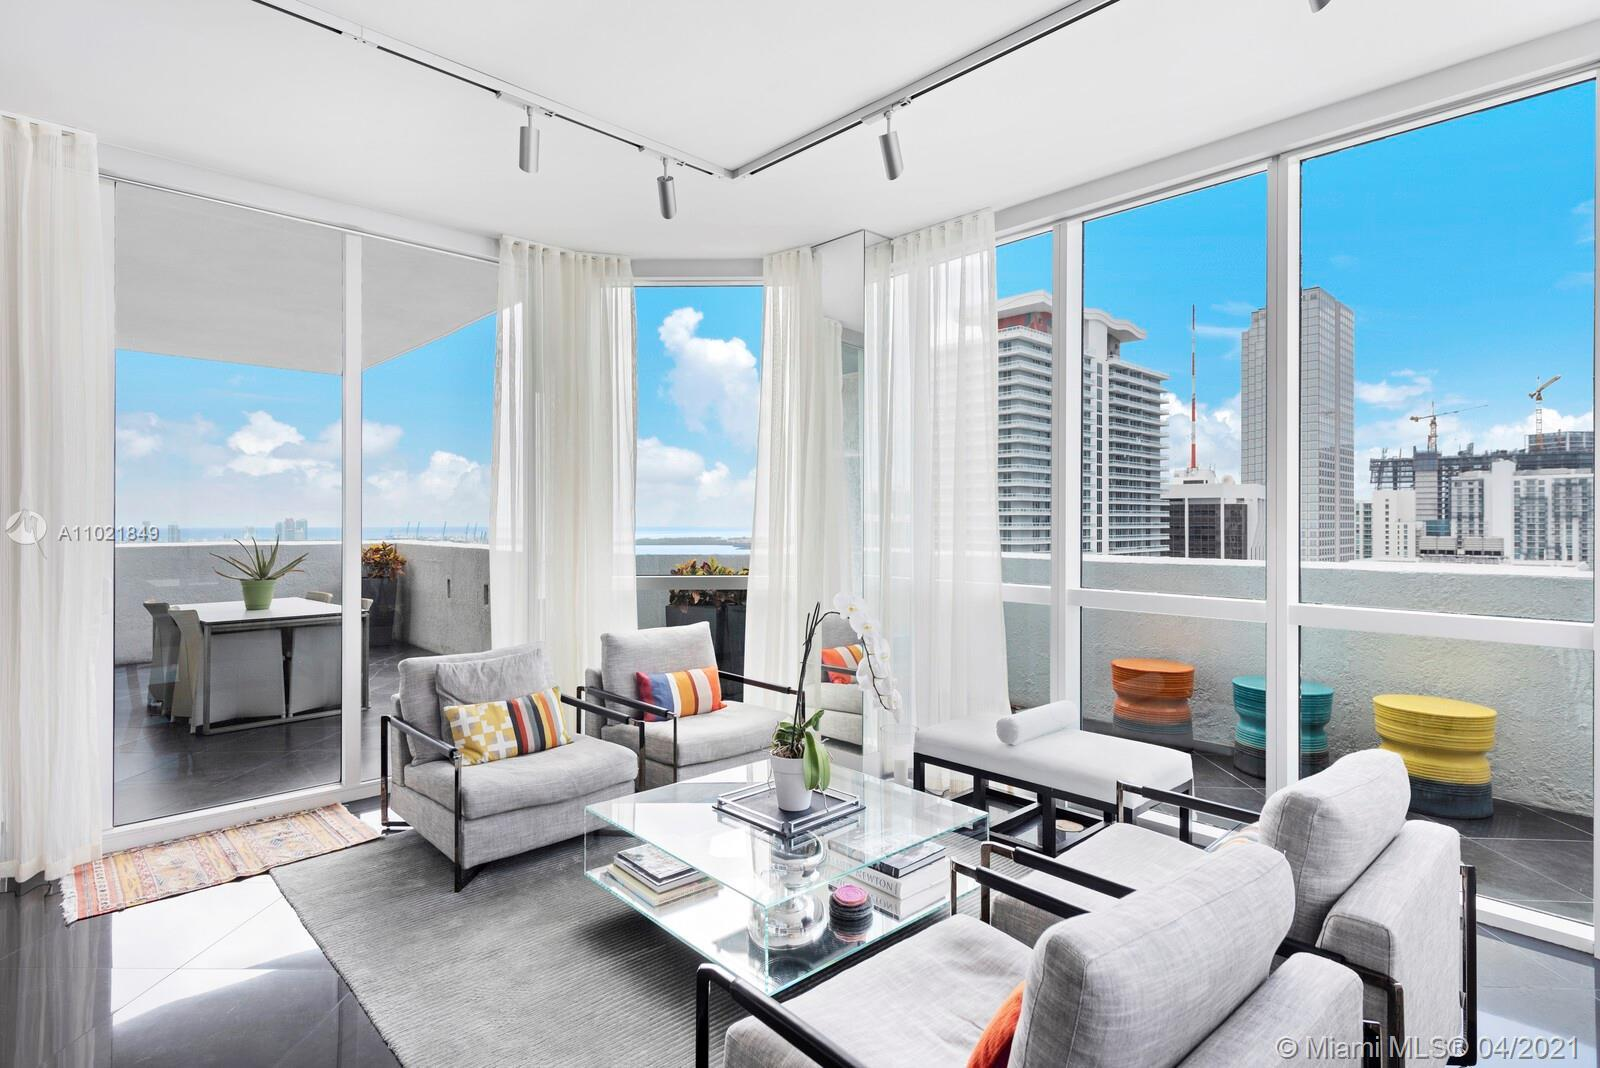 Designer-decorated turnkey lower penthouse with 10-foot ceilings boasts 3 br/3 ba and wraparound ter